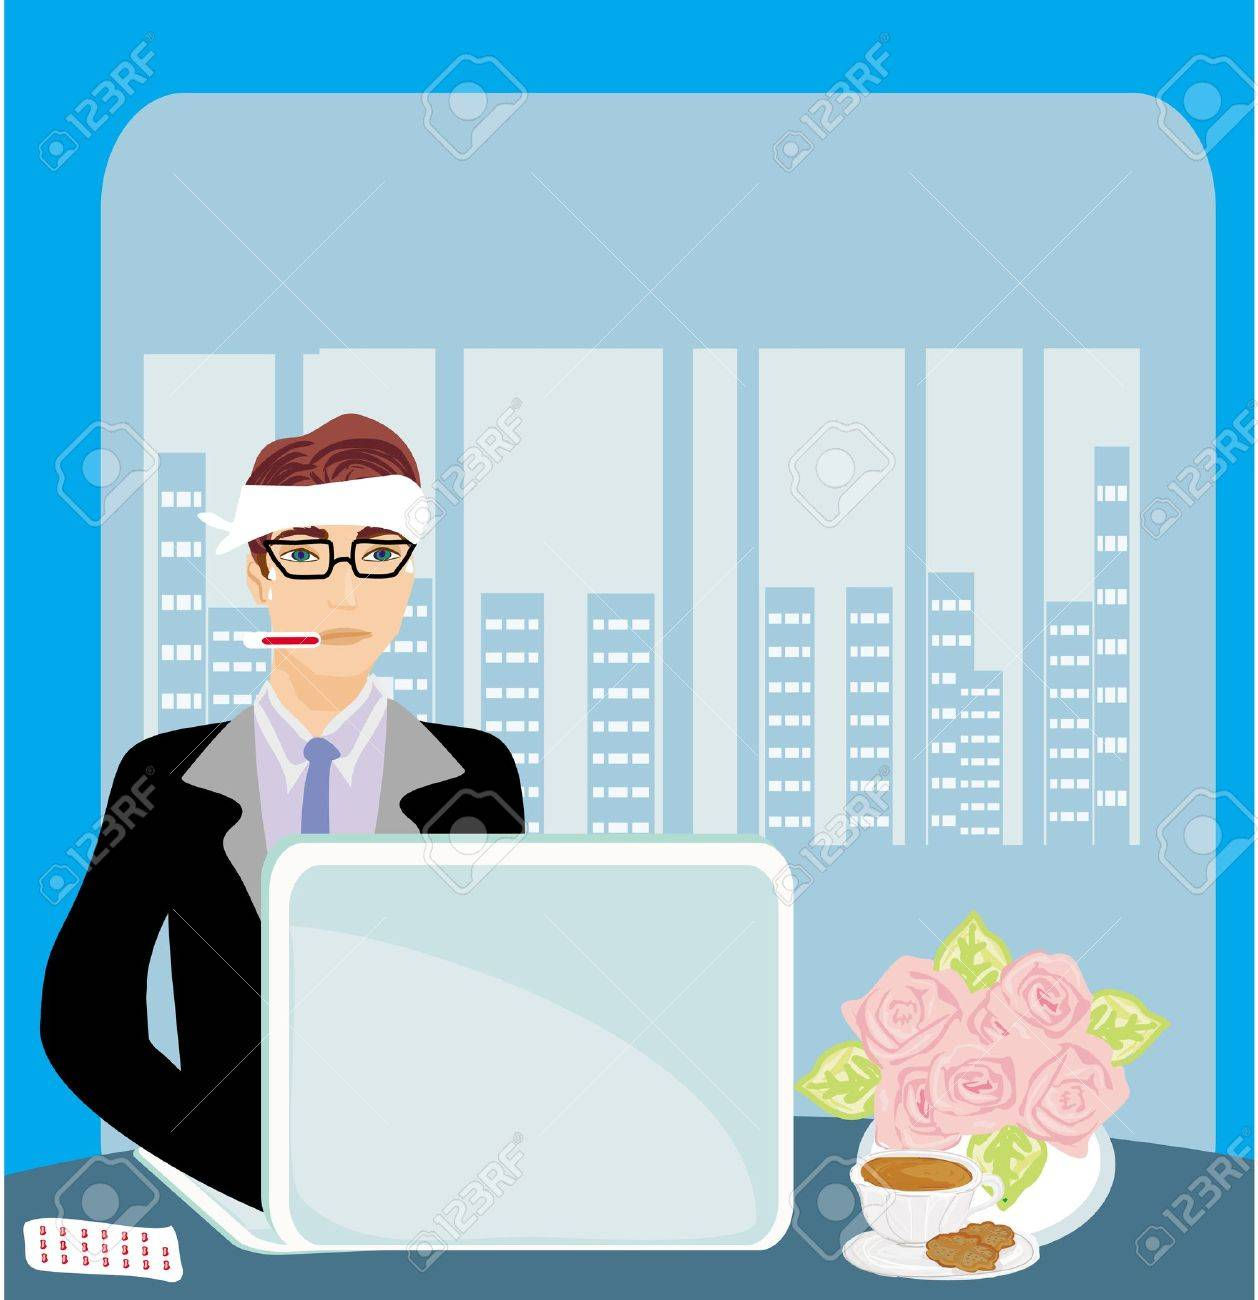 workaholic sick in the office Stock Vector - 21845265